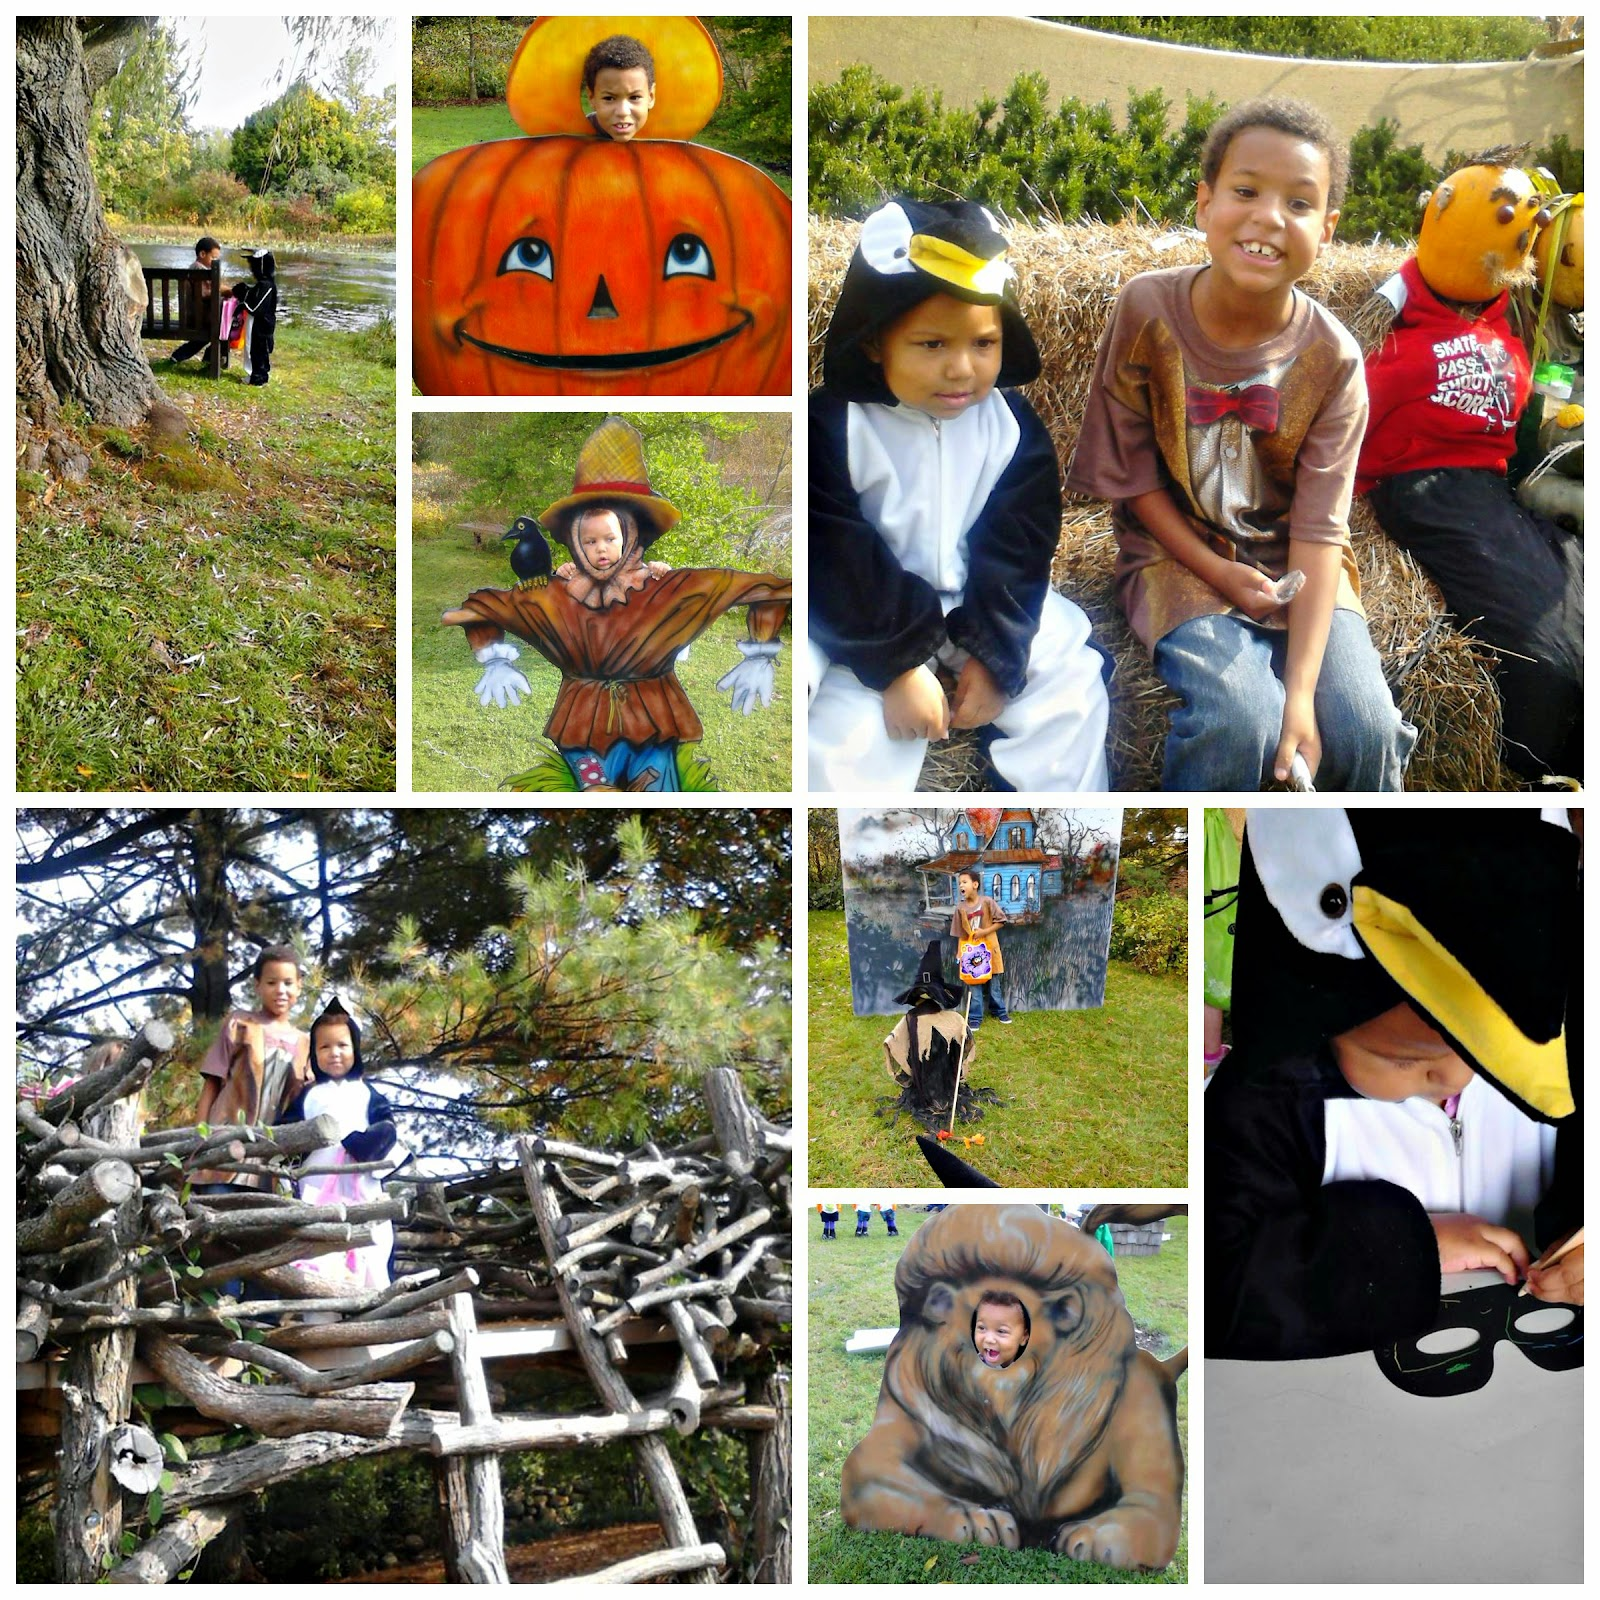 Fall fun in Northeast Ohio at Goblins in the Garden at the Holden Arboretum | iNeed a Playdate